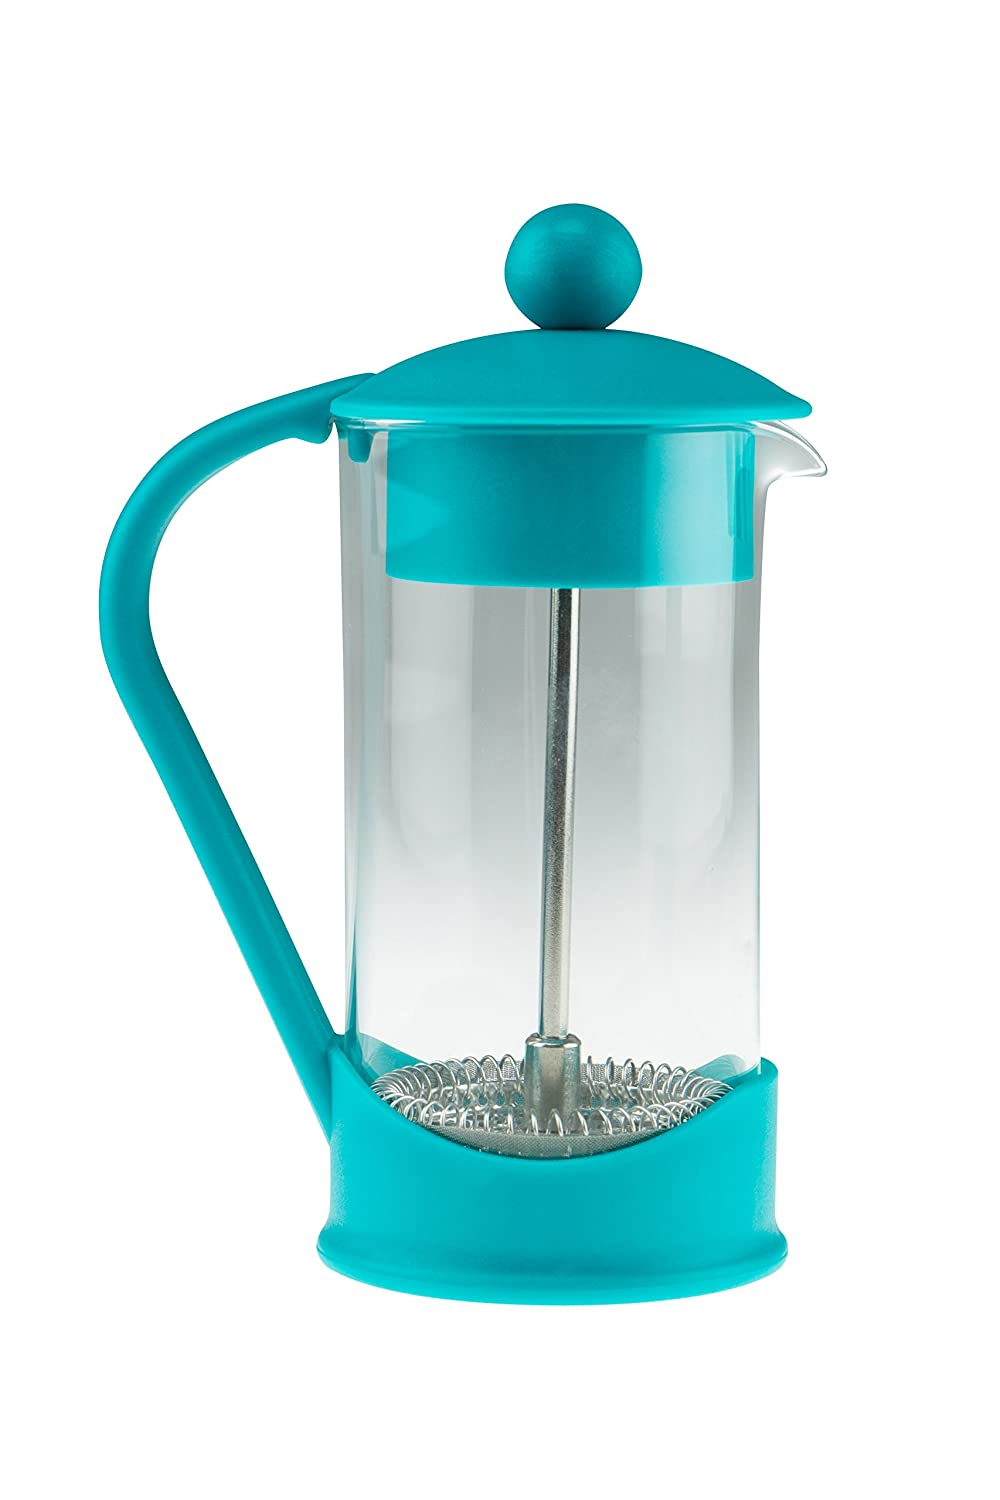 French Press Single Serving Coffee Maker by Clever Chef | Small French Press Perfect for Morning Coffee | Maximum Flavor Coffee Brewer With Superior Filtration | 2 Cup Capacity (12 fl oz/0.4 liter) SYNCHKG059677